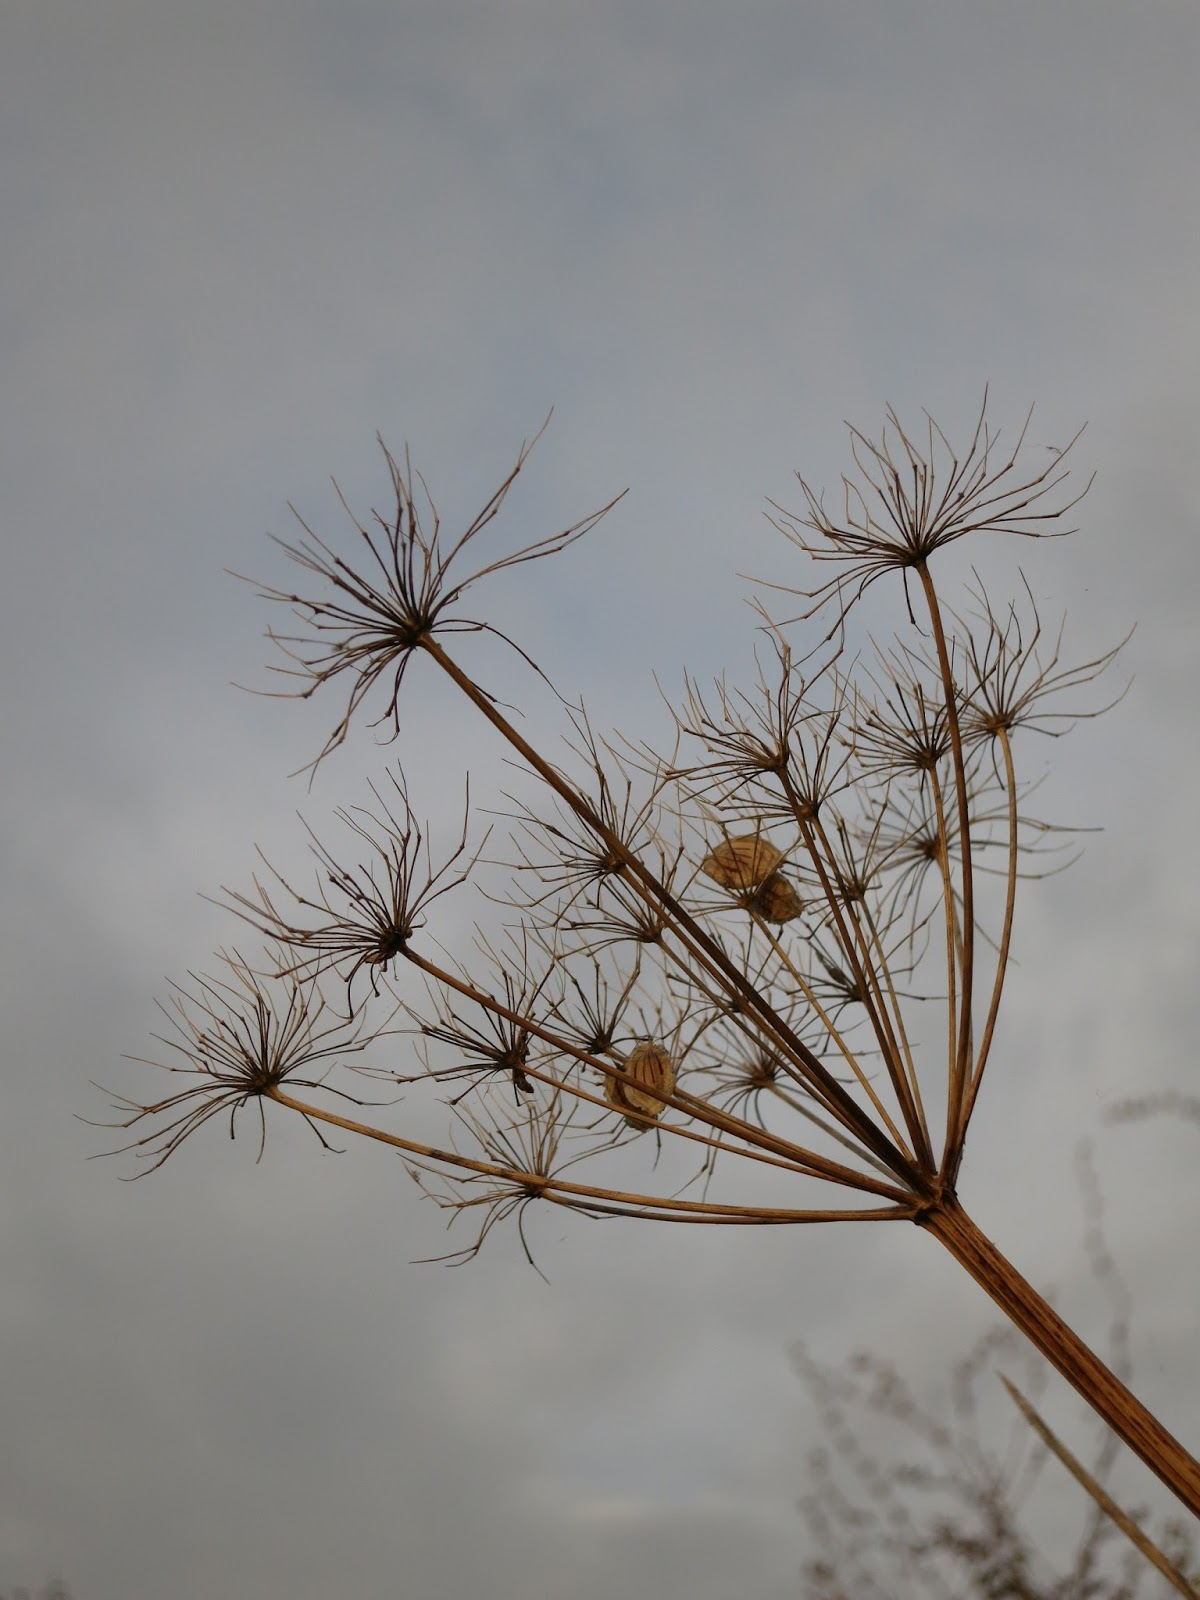 Bare headed umbelliferous plant with four seeds still attached